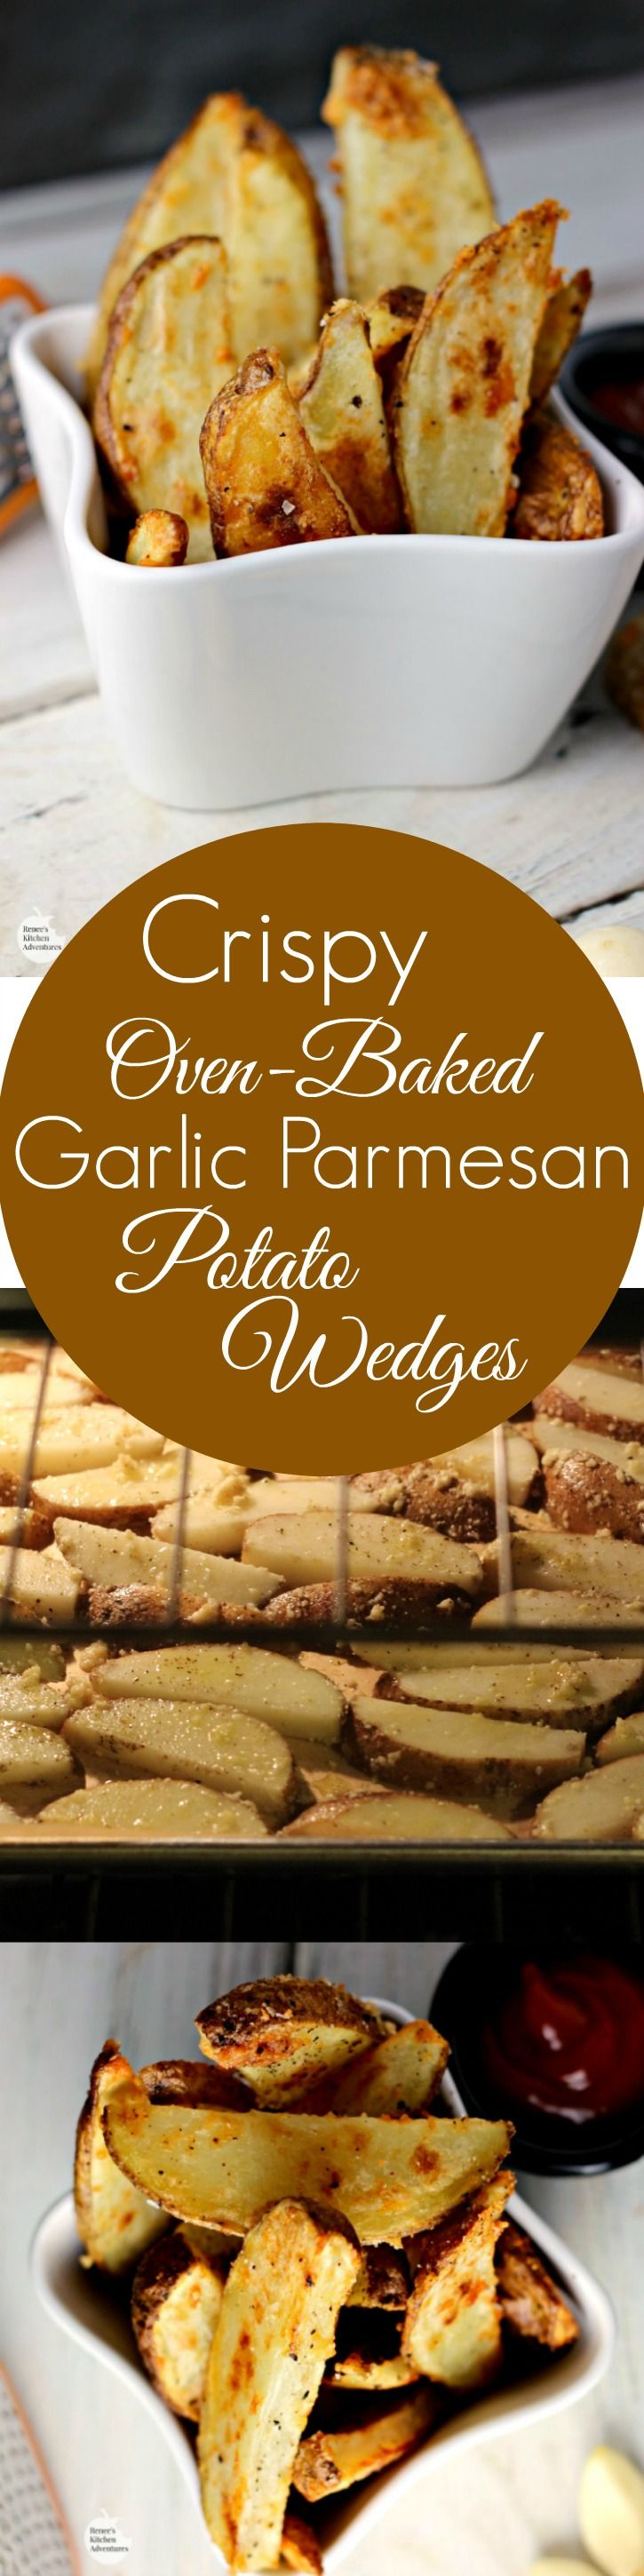 Crispy Oven-Baked Garlic Parmesan Potato Wedges   by Renee's Kitchen Adventures - A healthy side dish with a secret for perfectly crispy oven potatoes! Crunchy on the outside and fluffy on the inside!